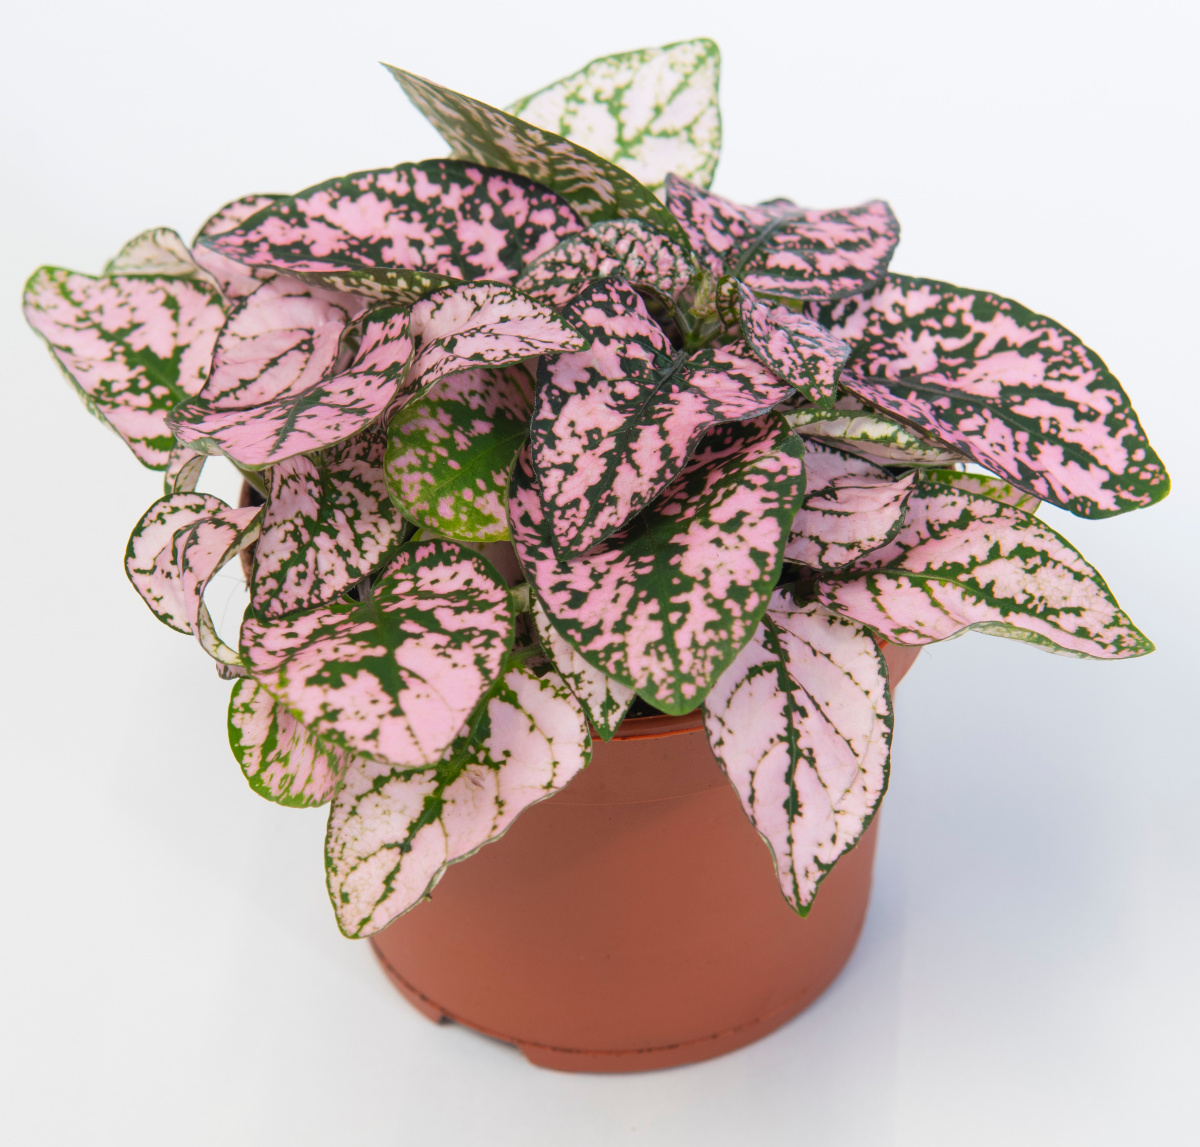 Polka Dot Plants Bring Color In The Long White Winter